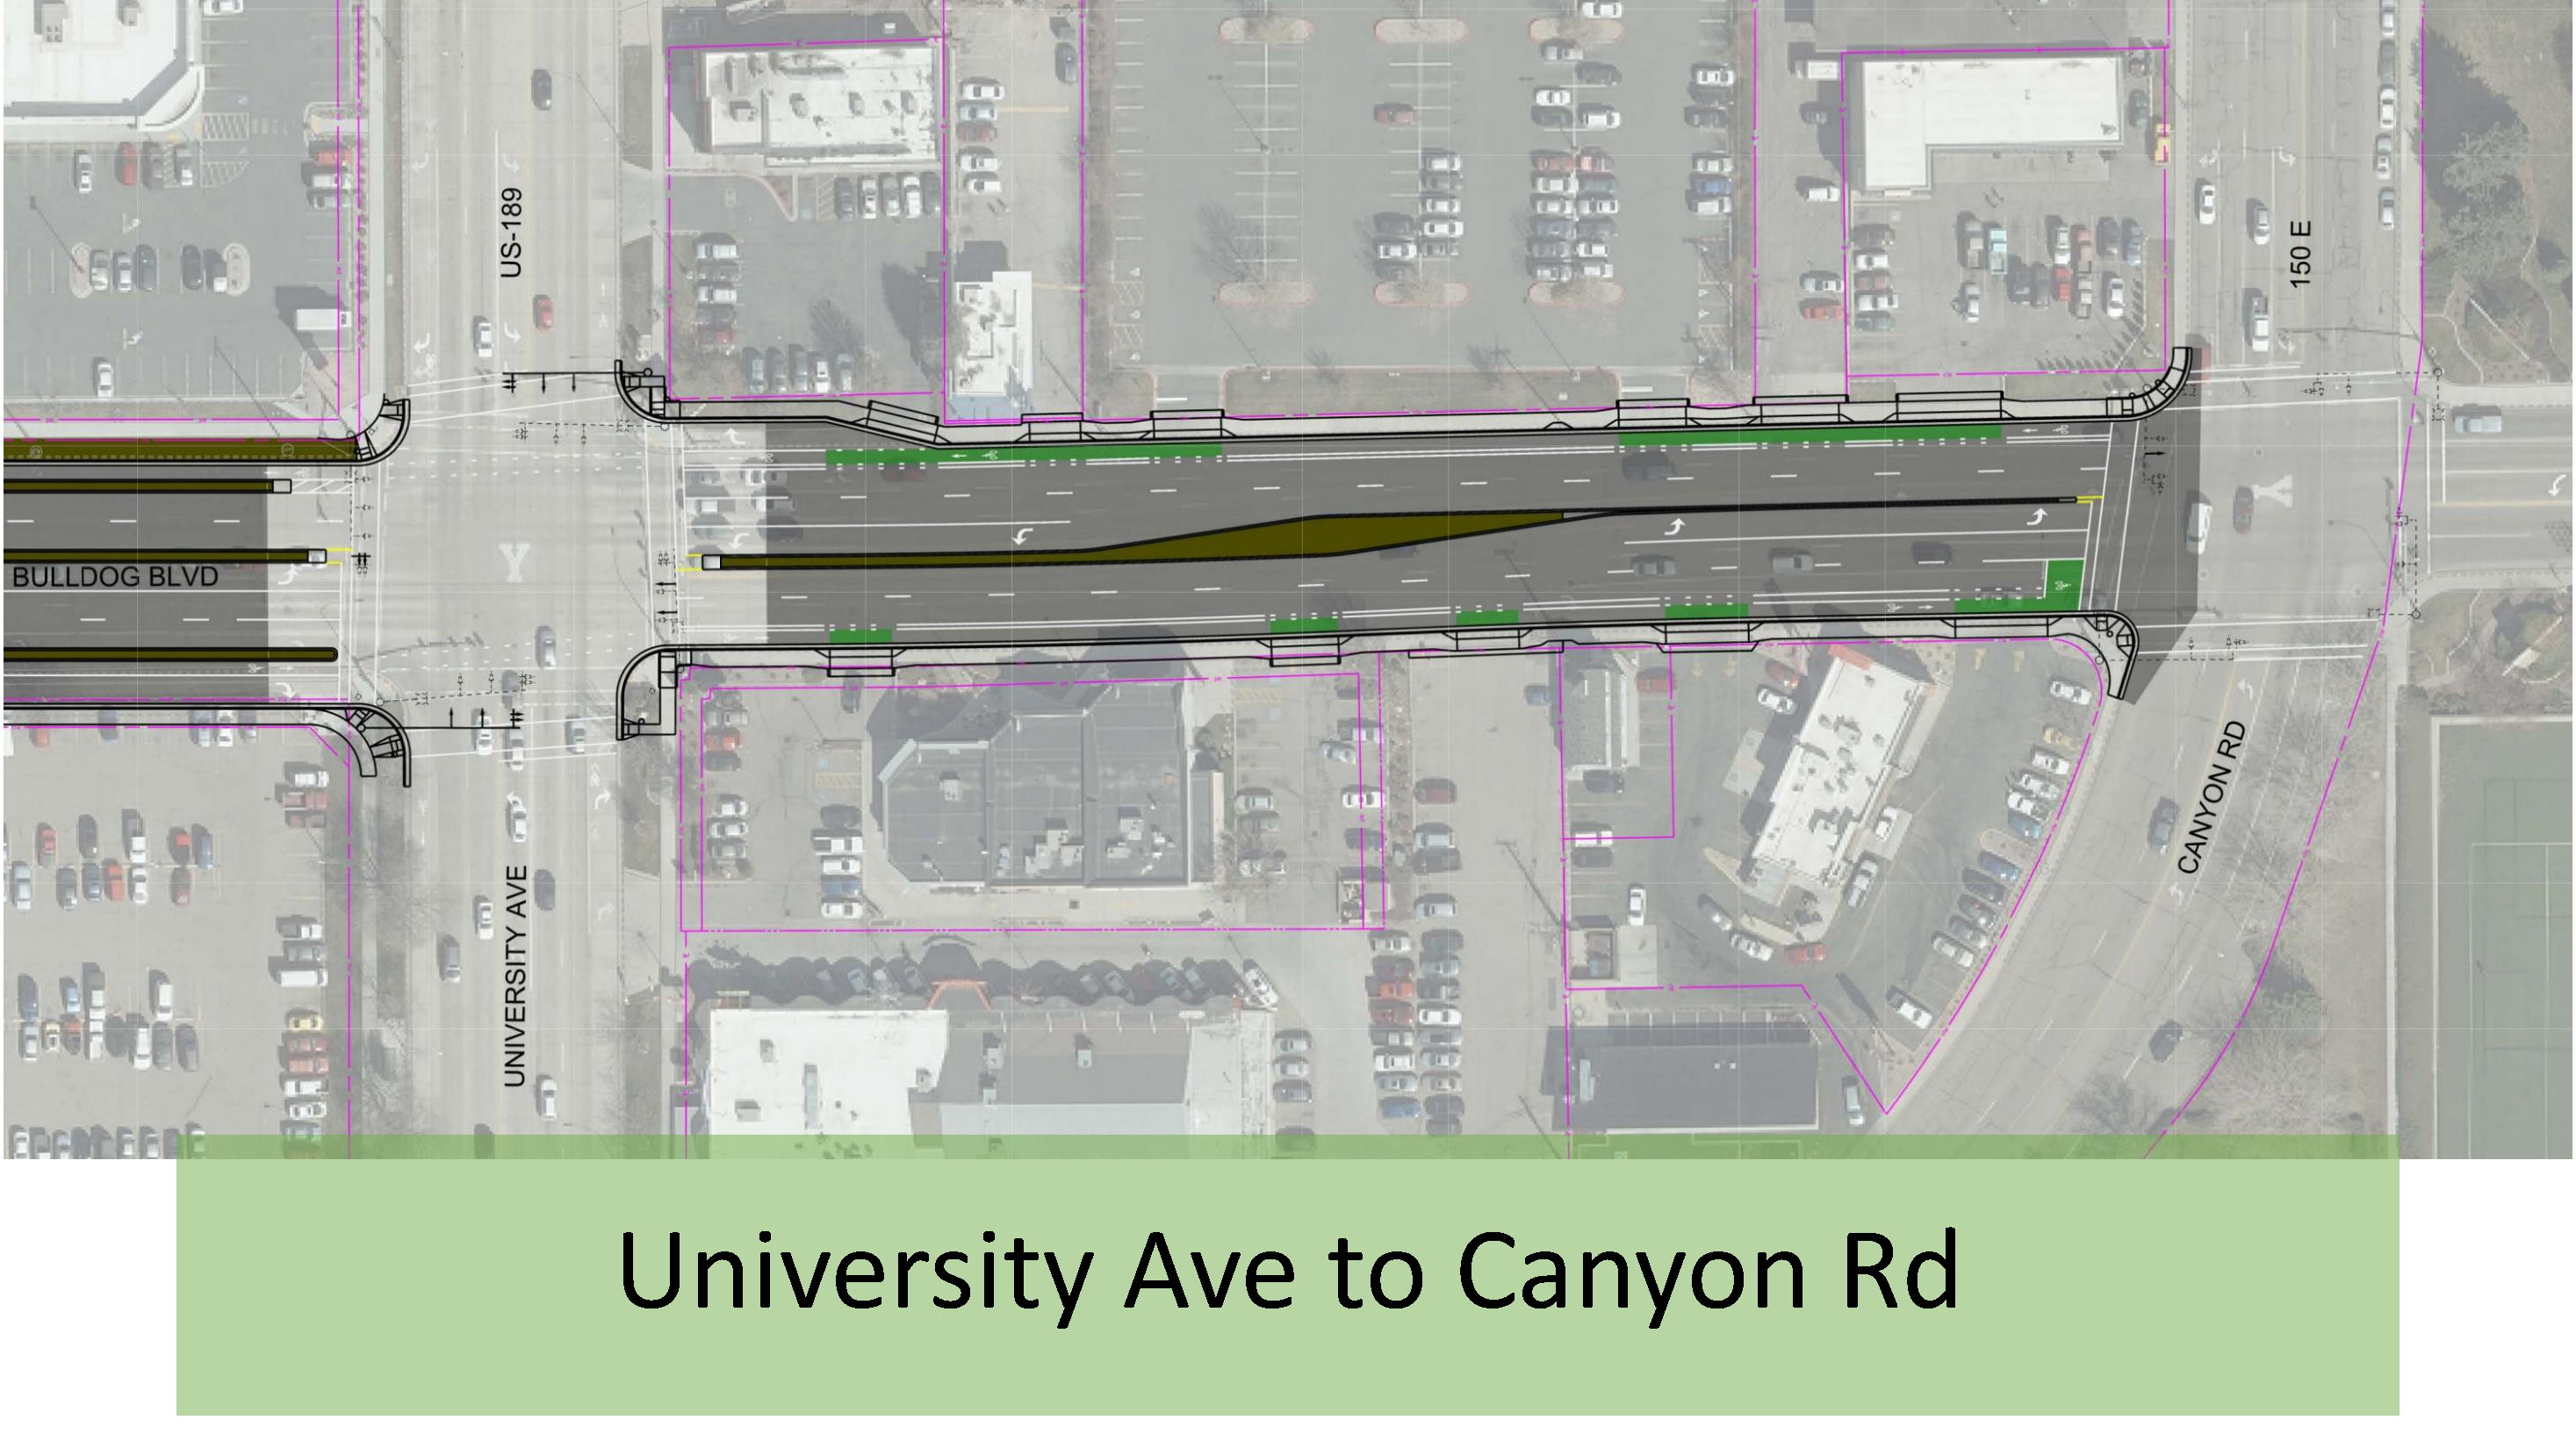 University Ave to Canyon Rd